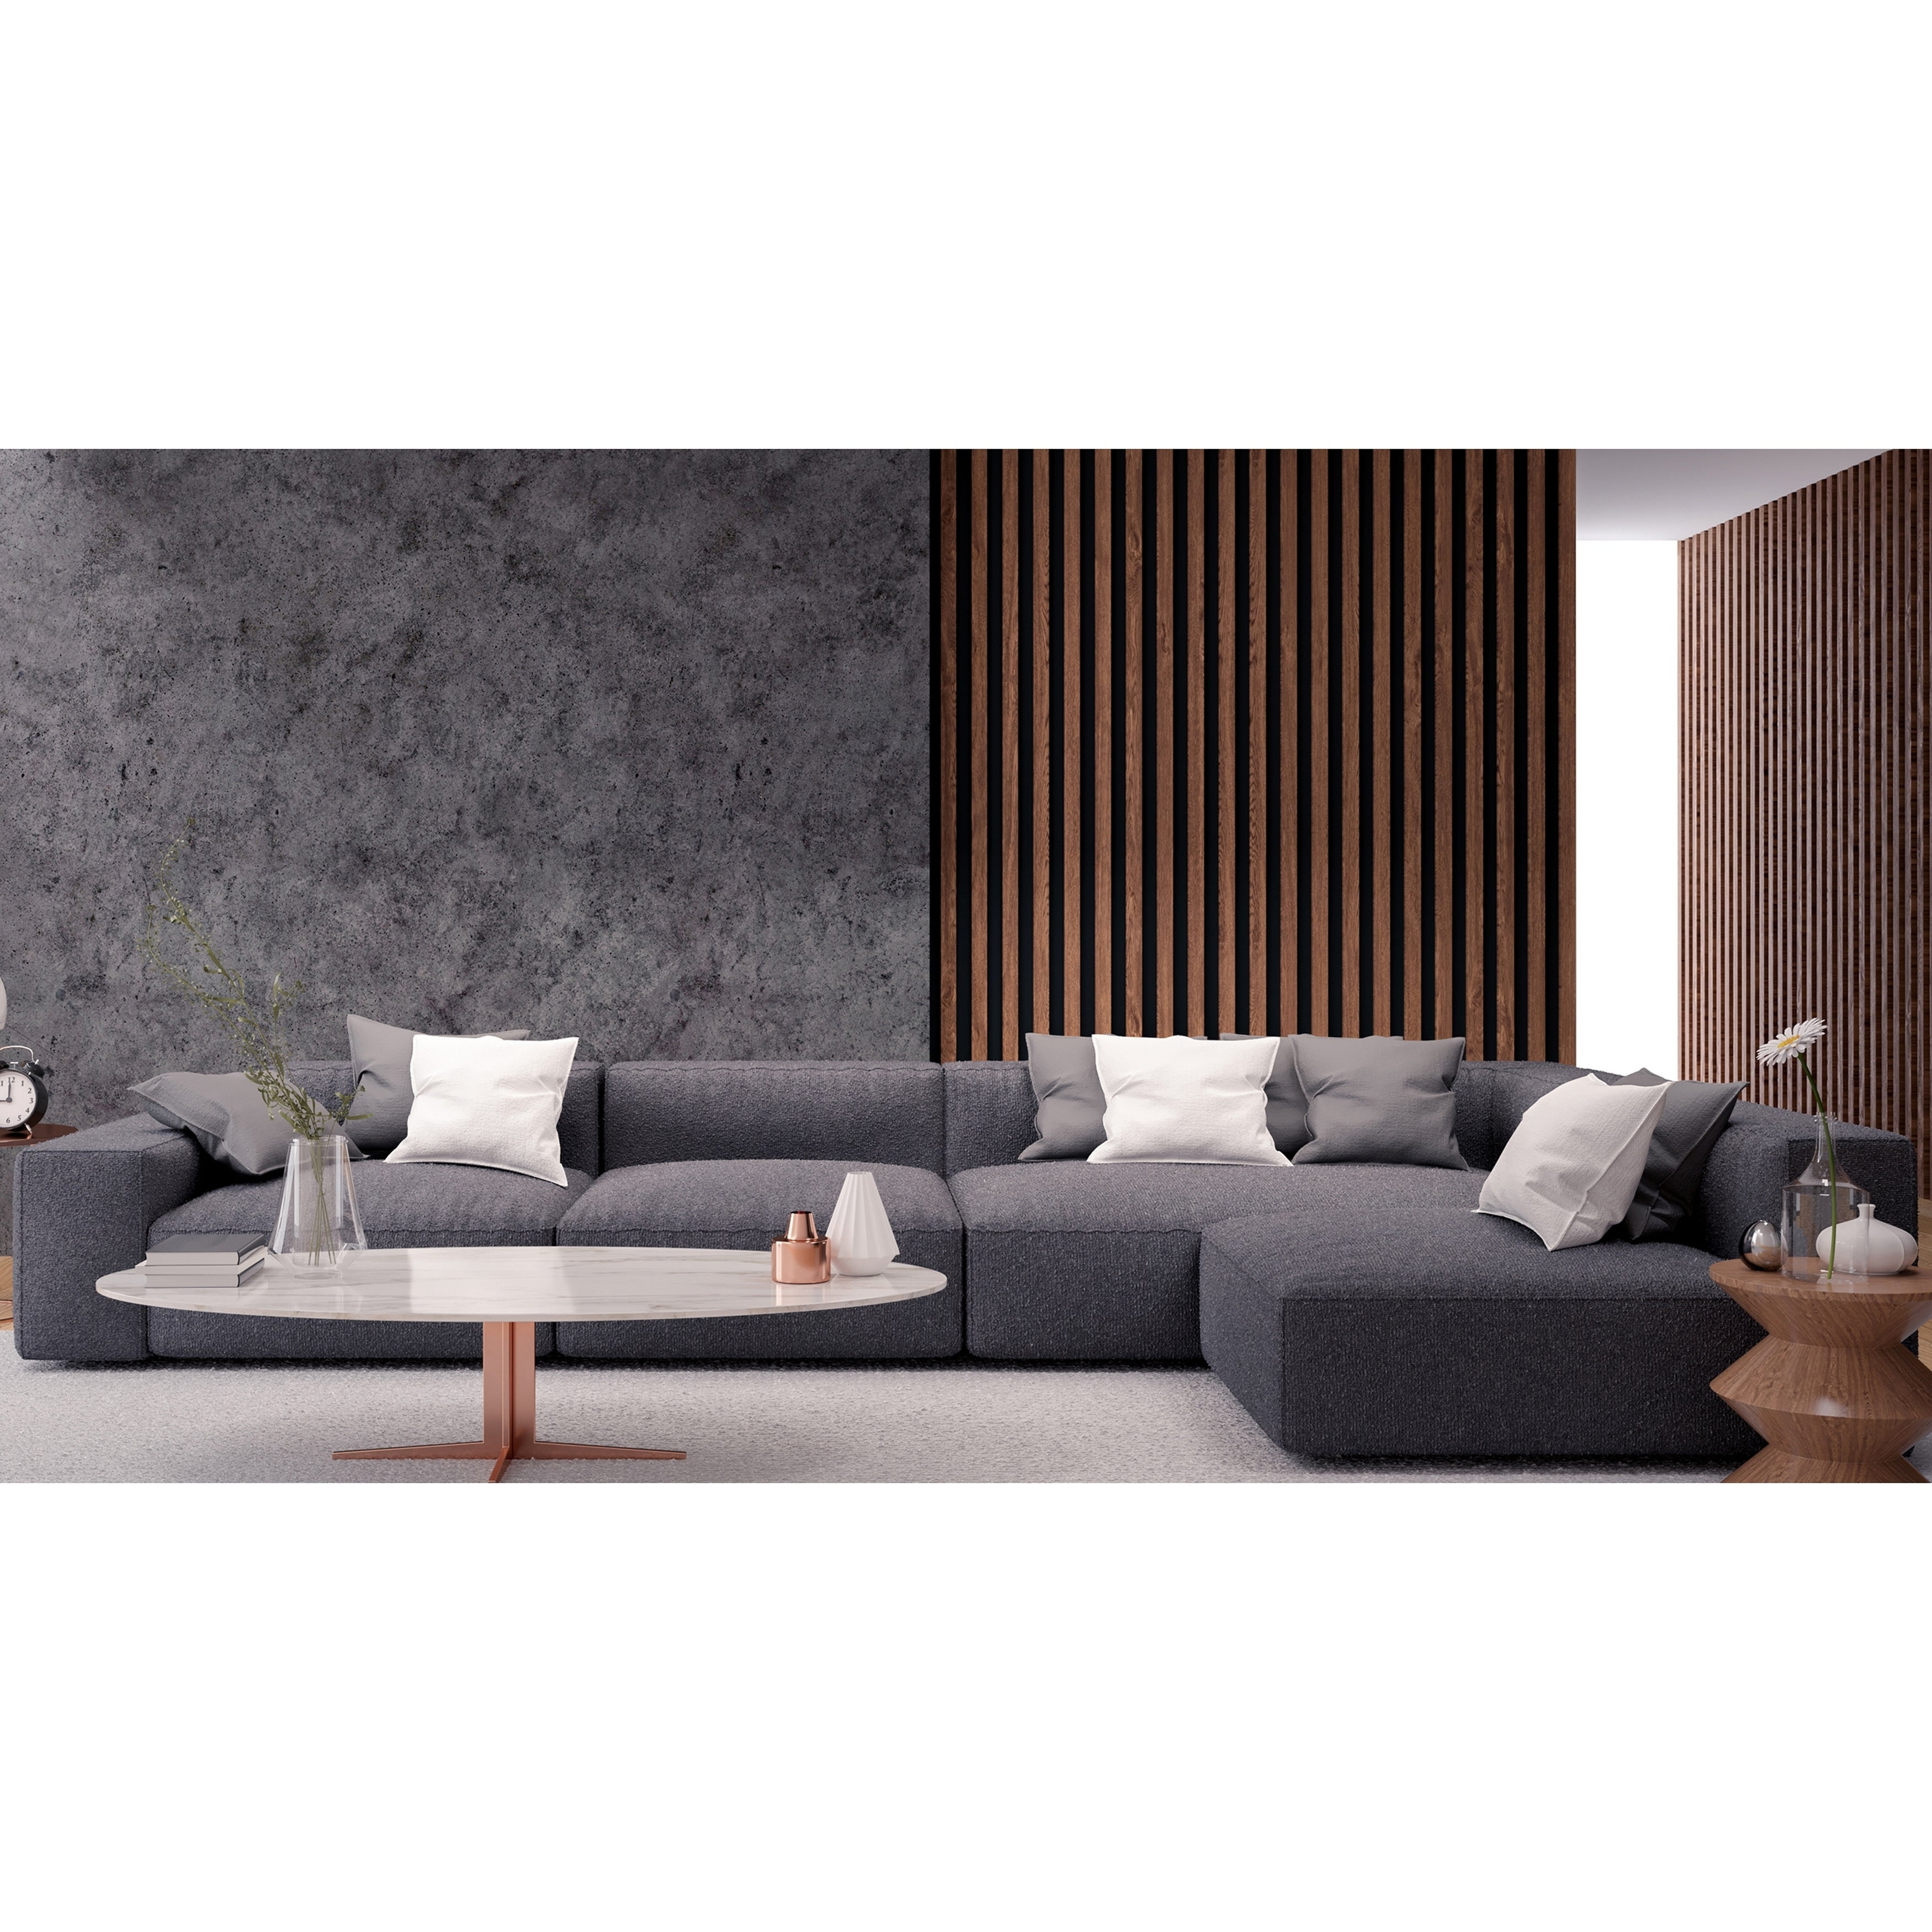 Astonishing Made To Order Roche Studio Elijah Grey Fabric Sectional Sofa Caraccident5 Cool Chair Designs And Ideas Caraccident5Info